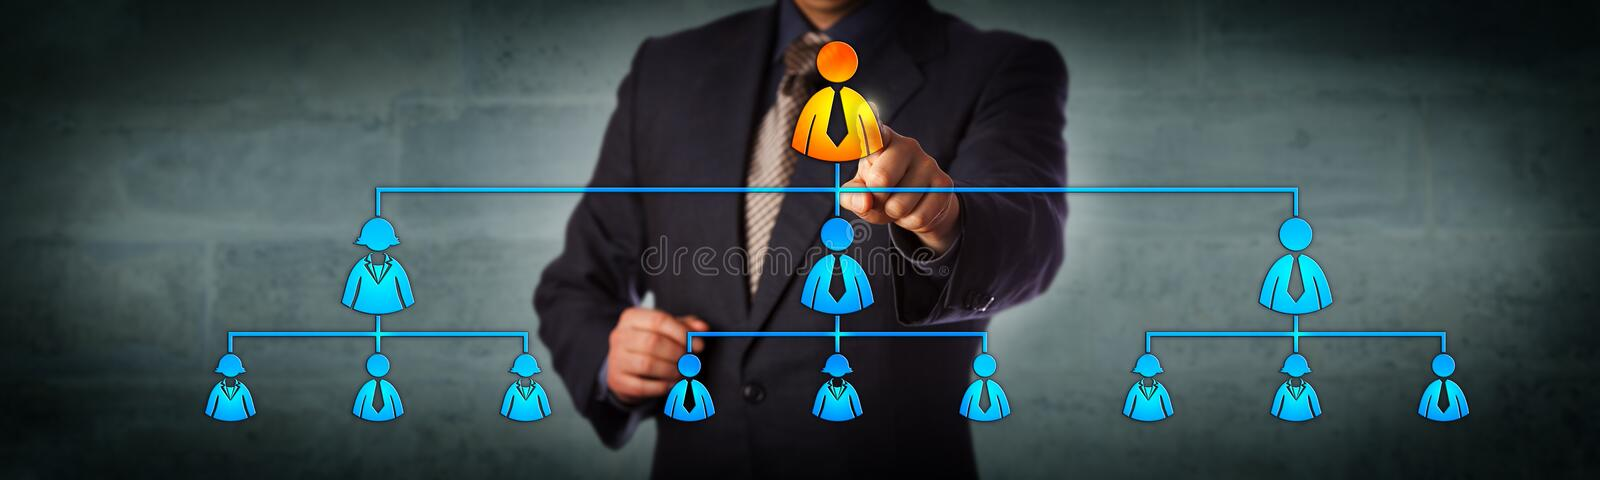 Chairman Highlighting CEO In Organization Chart stock images